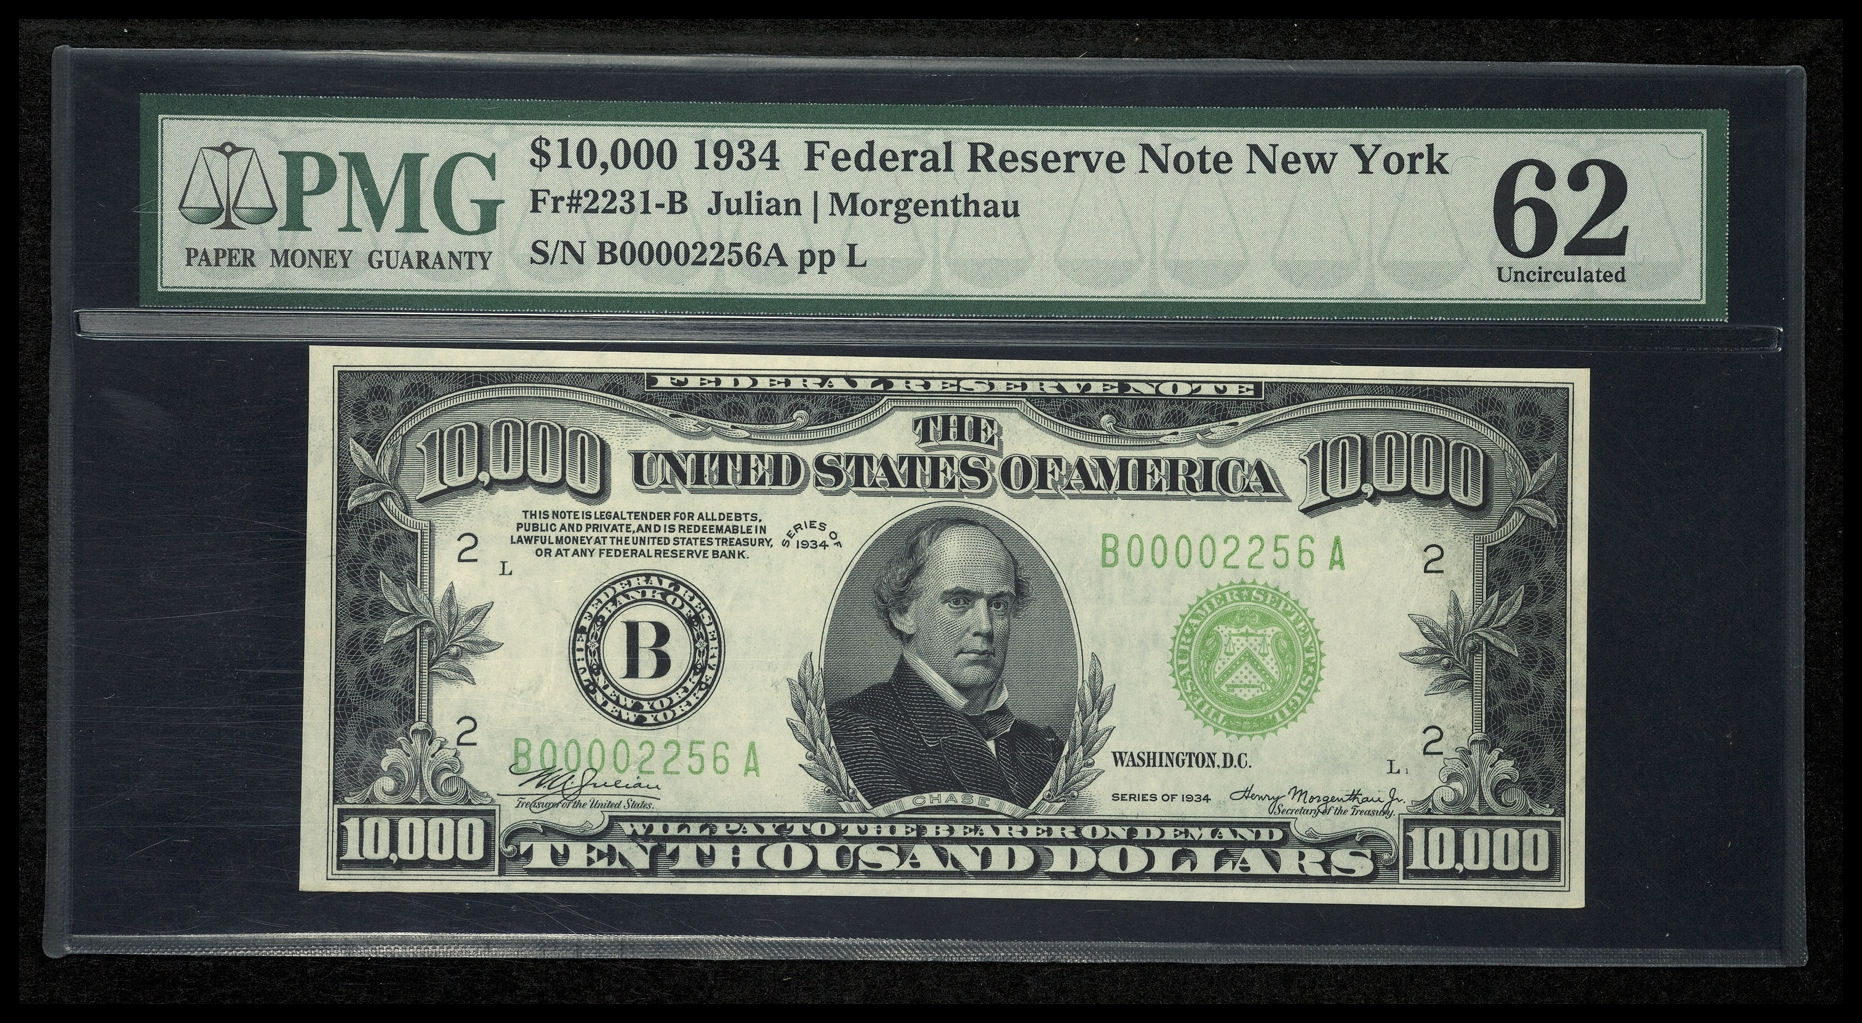 Binion's Horseshoe Casino - Fr. 2231-B 1934 $10,000 Federal Reserve Note